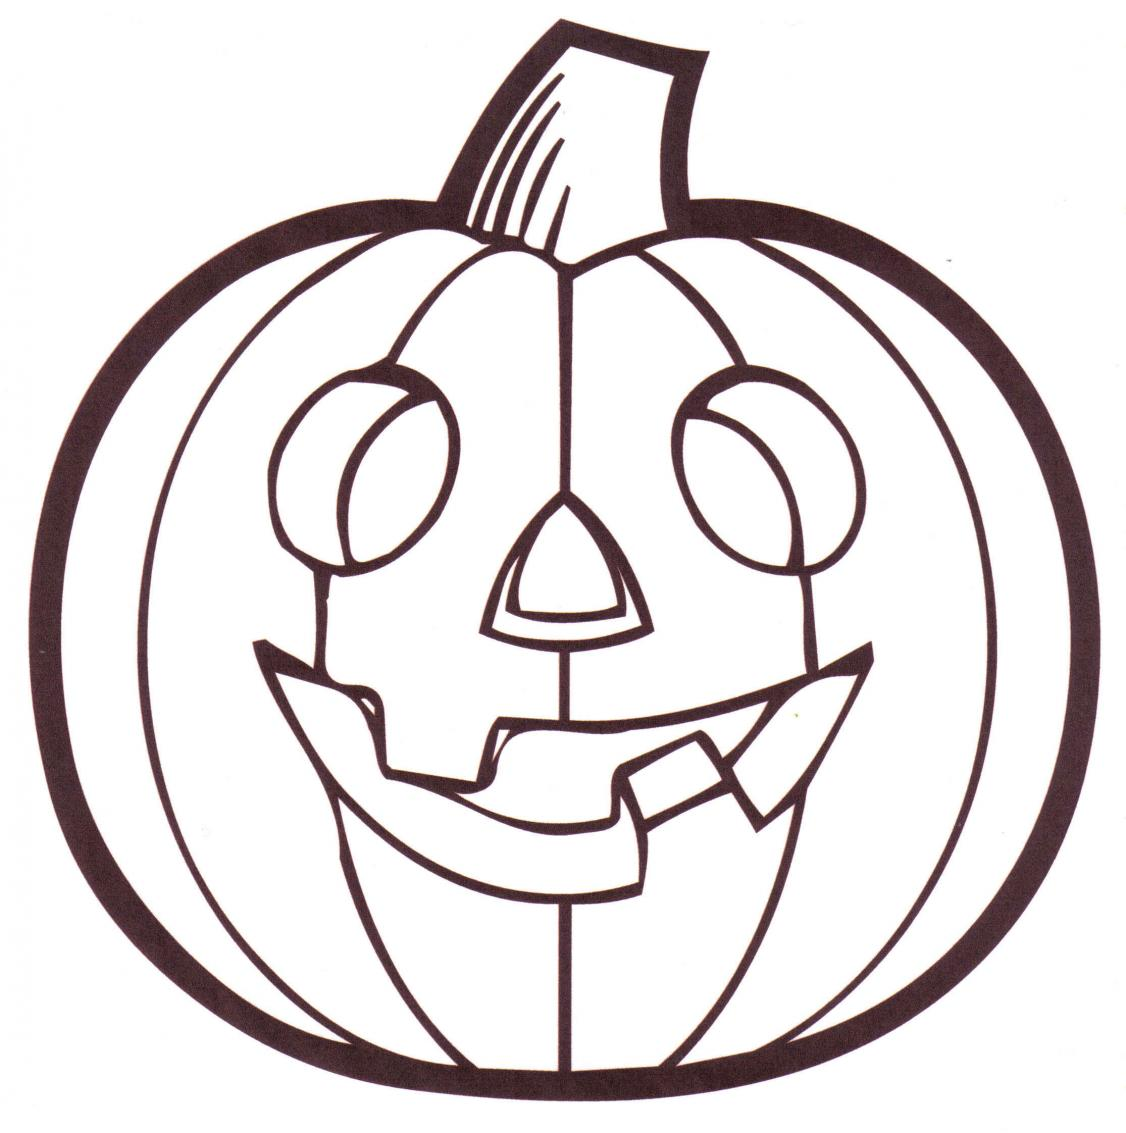 Uncategorized Pumpkin Coloring Pages Printable free printable pumpkin coloring pages for kids halloween page